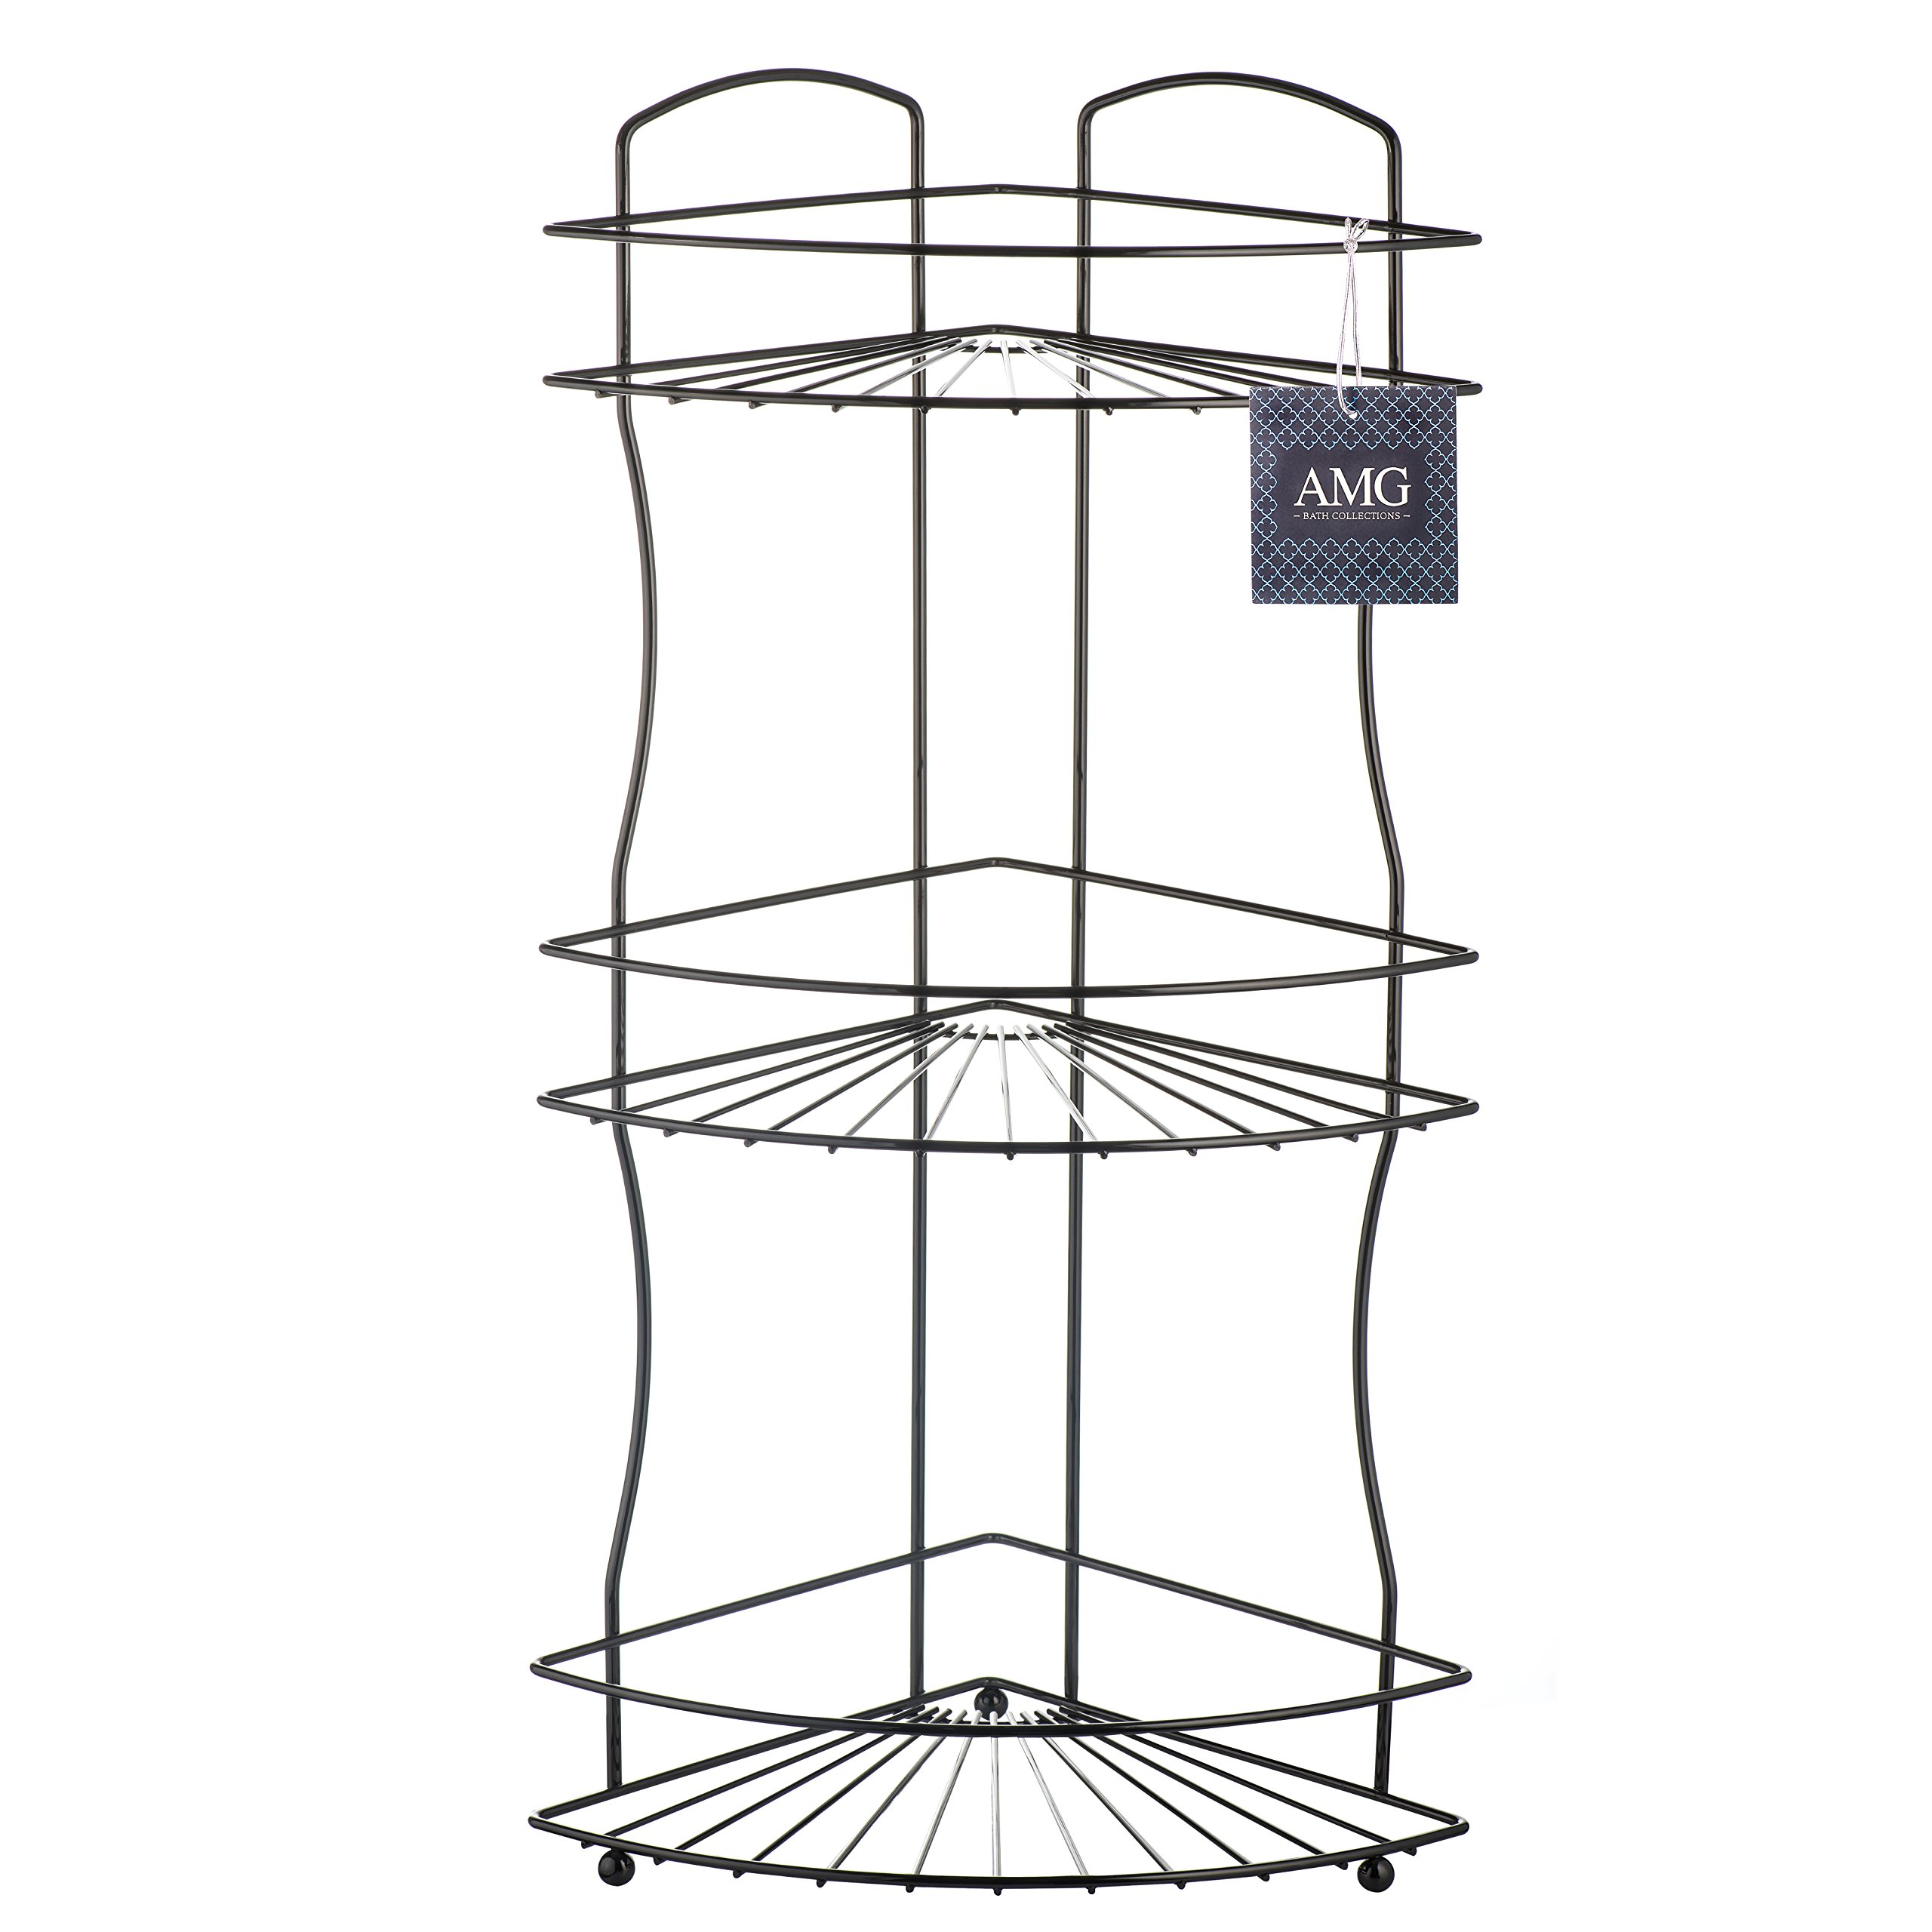 AMG and Enchante Accessories Free Standing Bathroom Spa Tower Floor Caddy, FC232-A BKN, Black Nickel by AMG (Image #8)